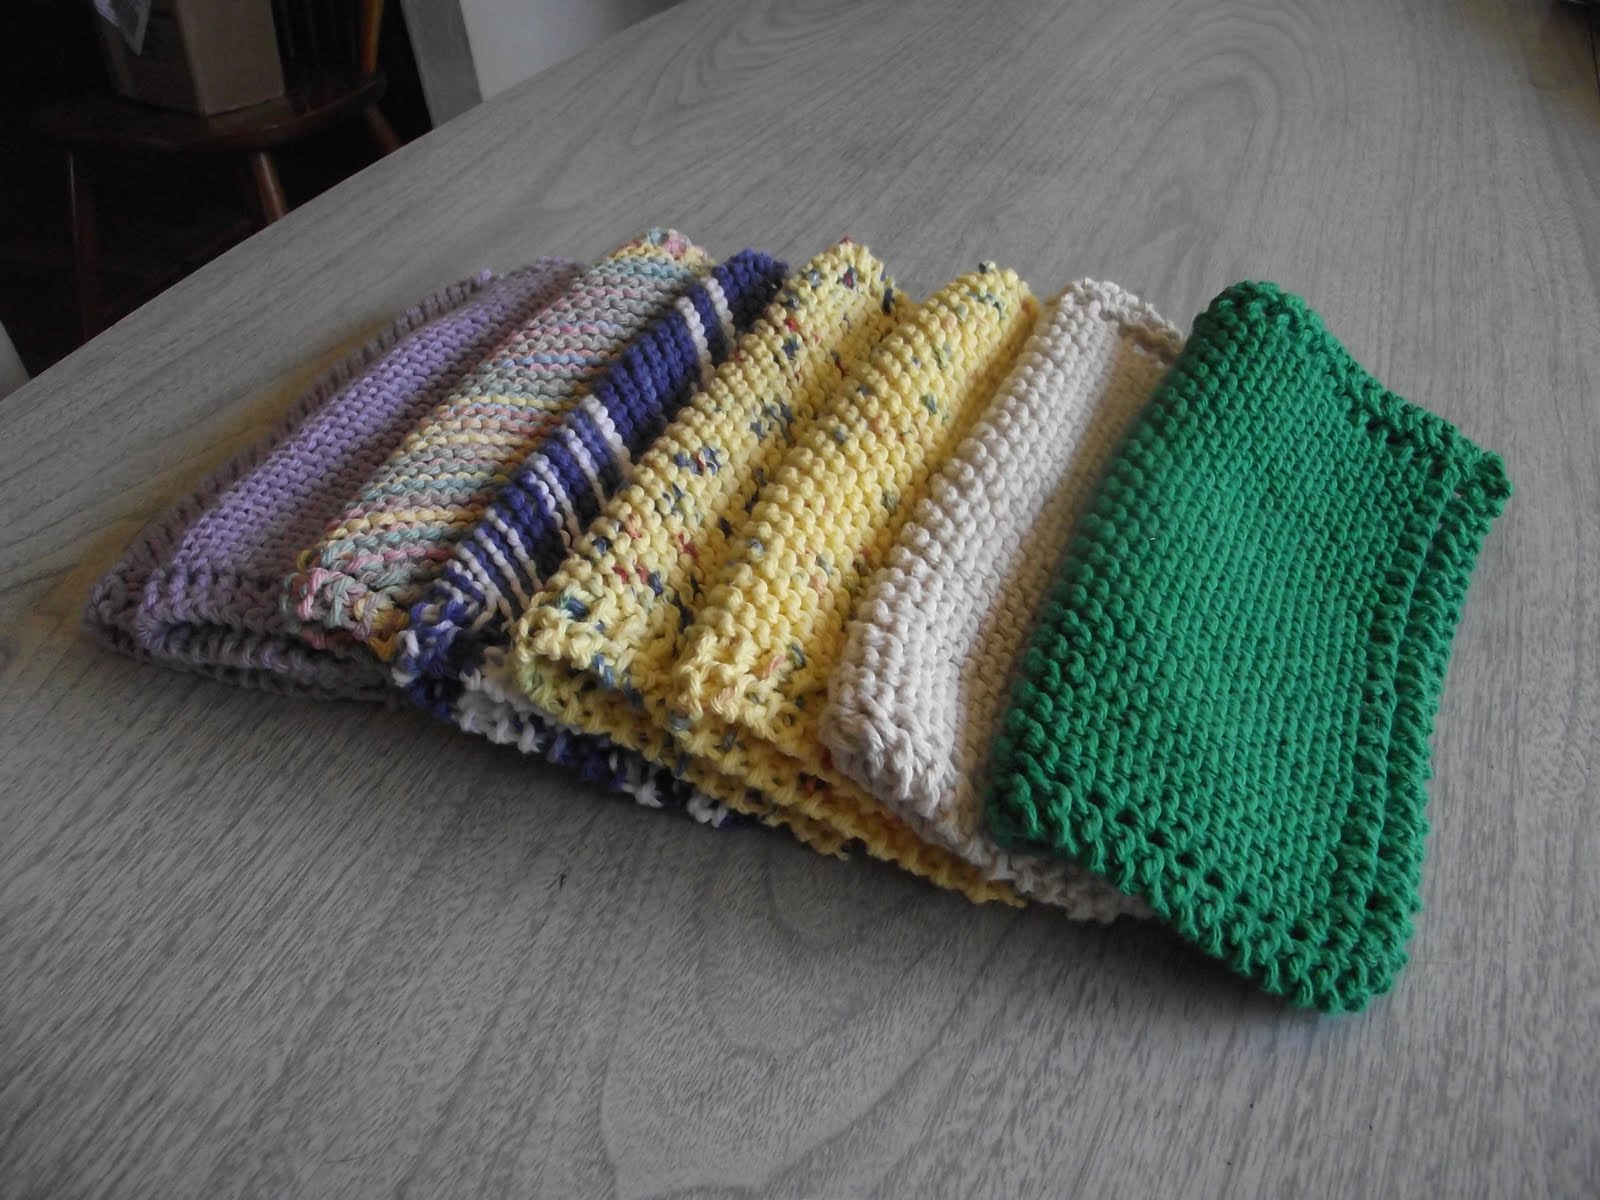 Knitted Dishcloths Free Patterns - My Patterns